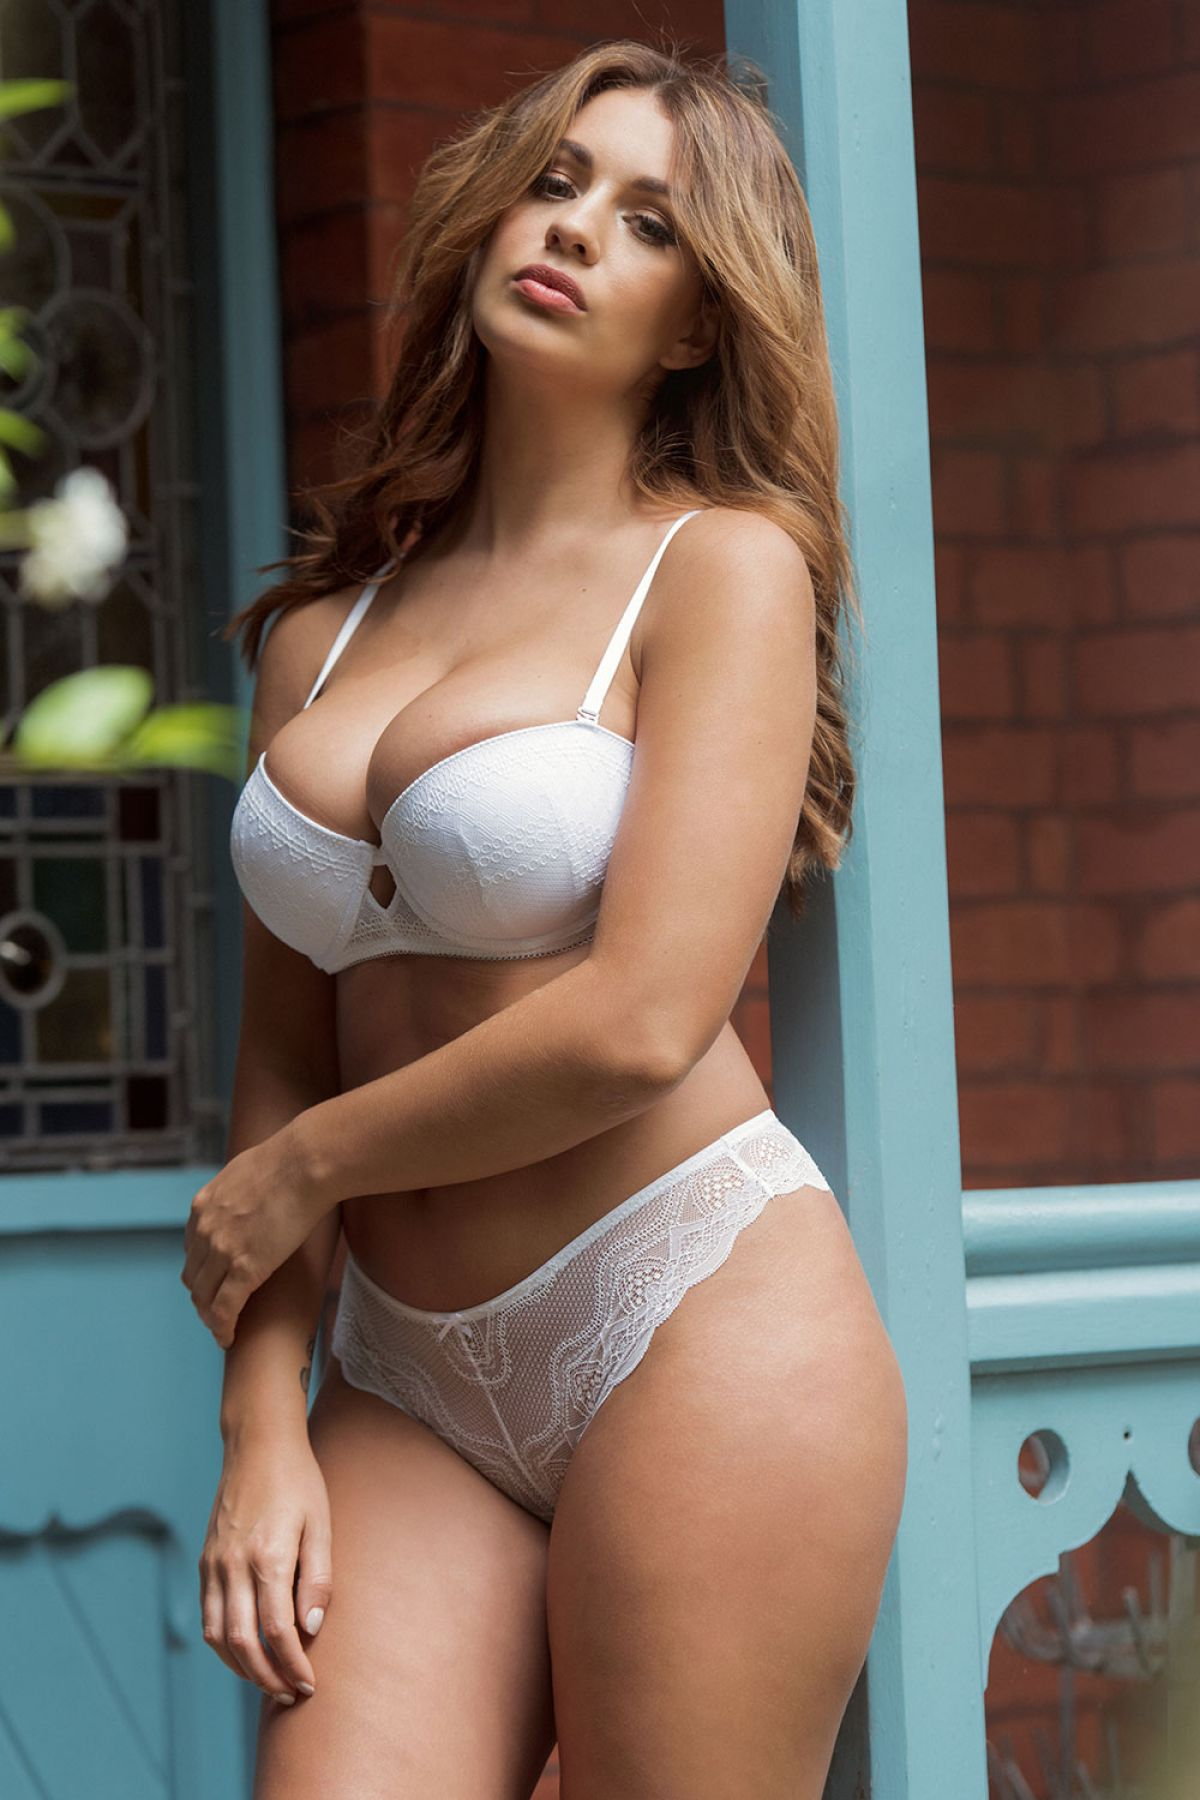 Holly Peers  Page3  September 5th 2016  Celebzz